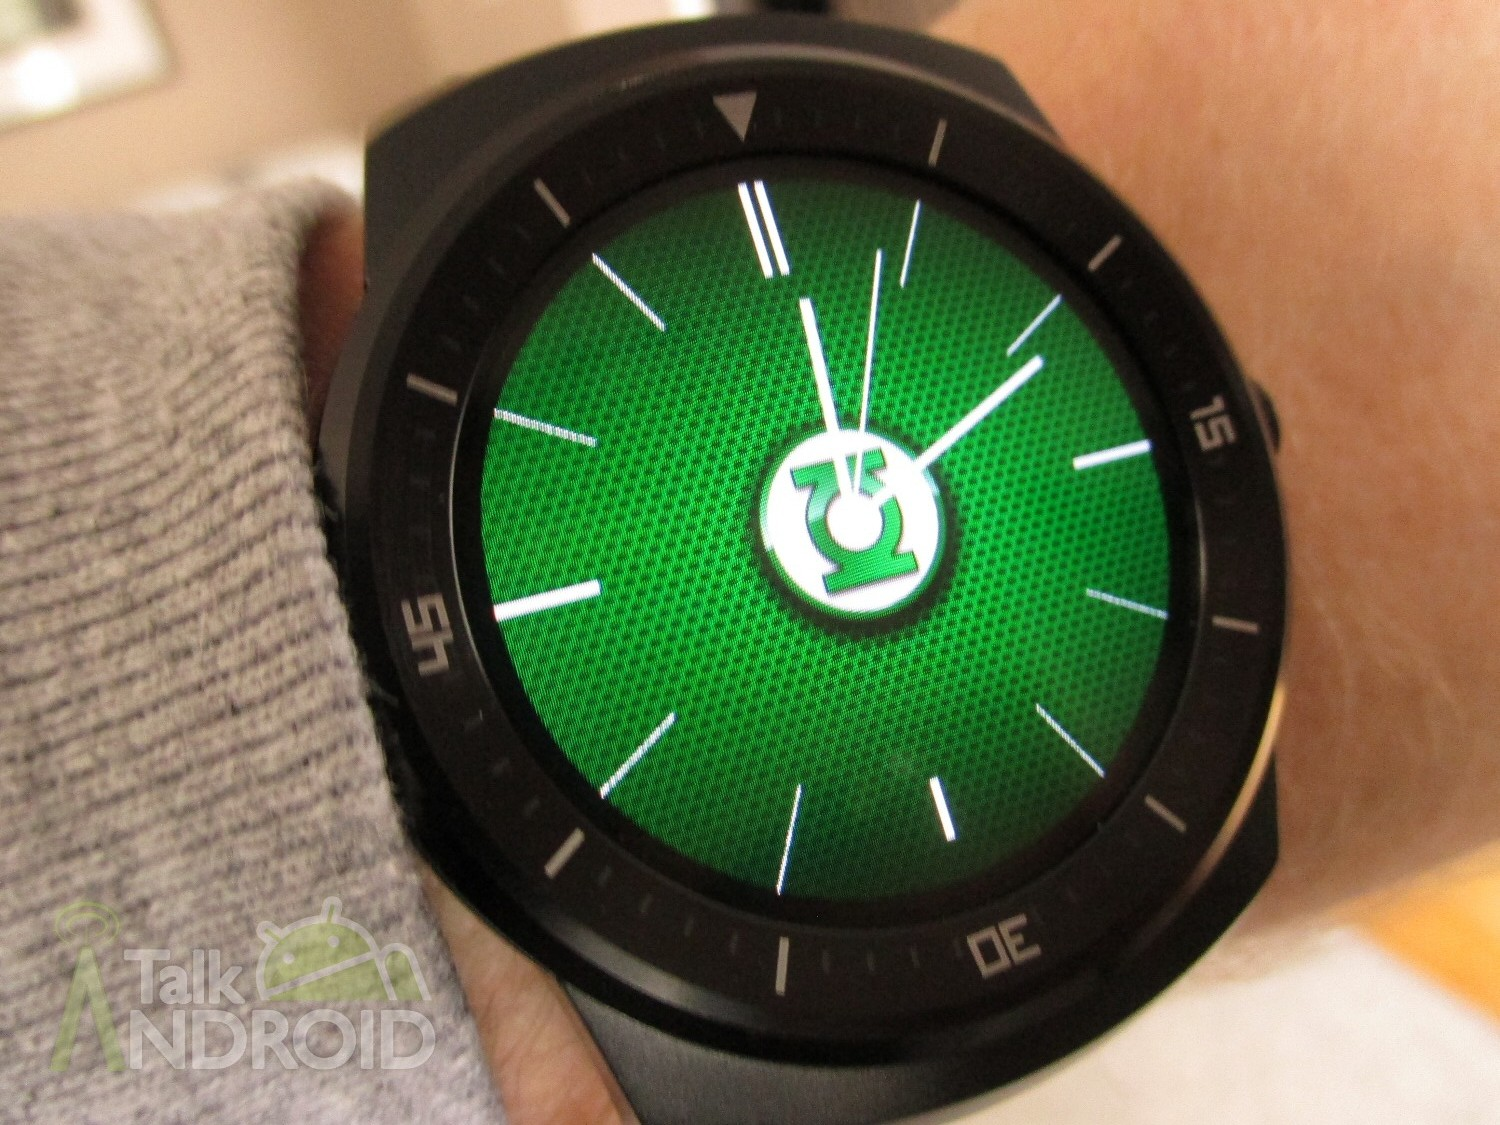 LG G Watch, Here Are New Pictures and New Color